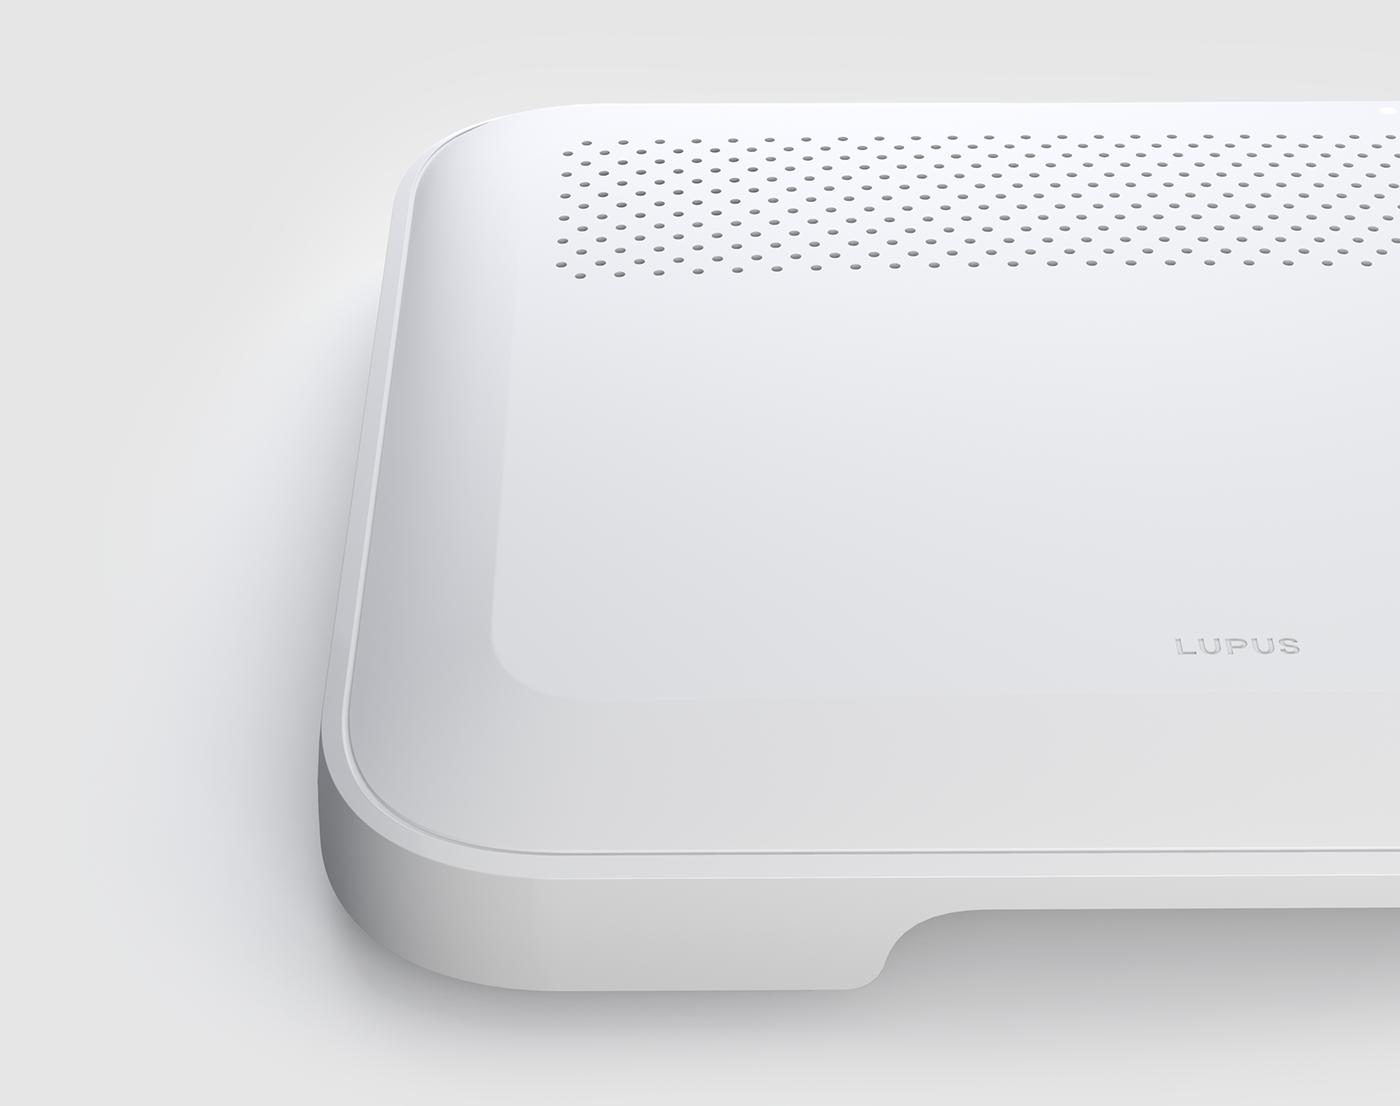 White Consumer electronic Smart home simplicity product design  lupus